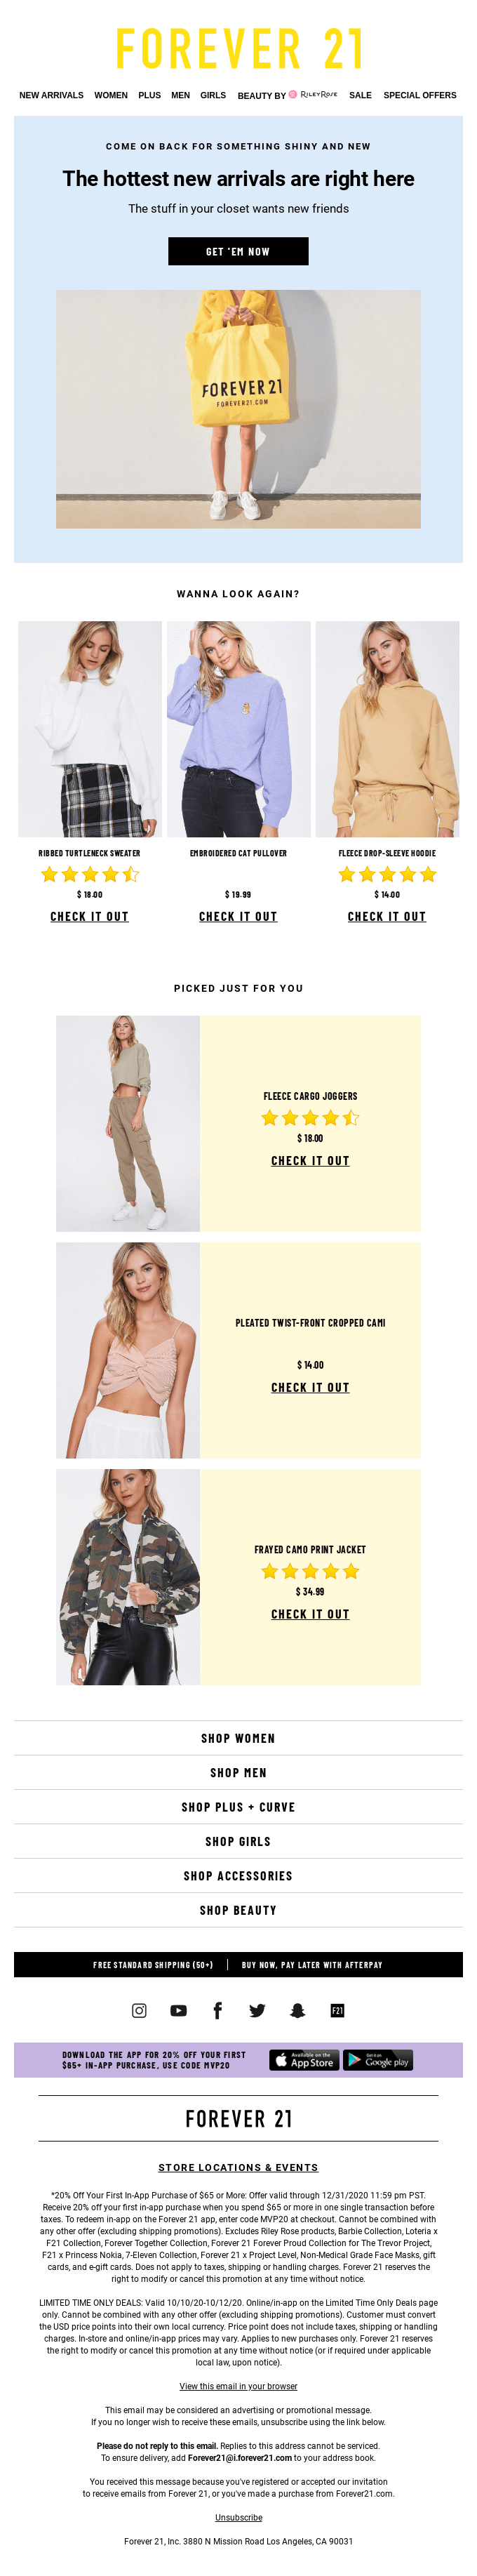 Spice up your last haul with something new